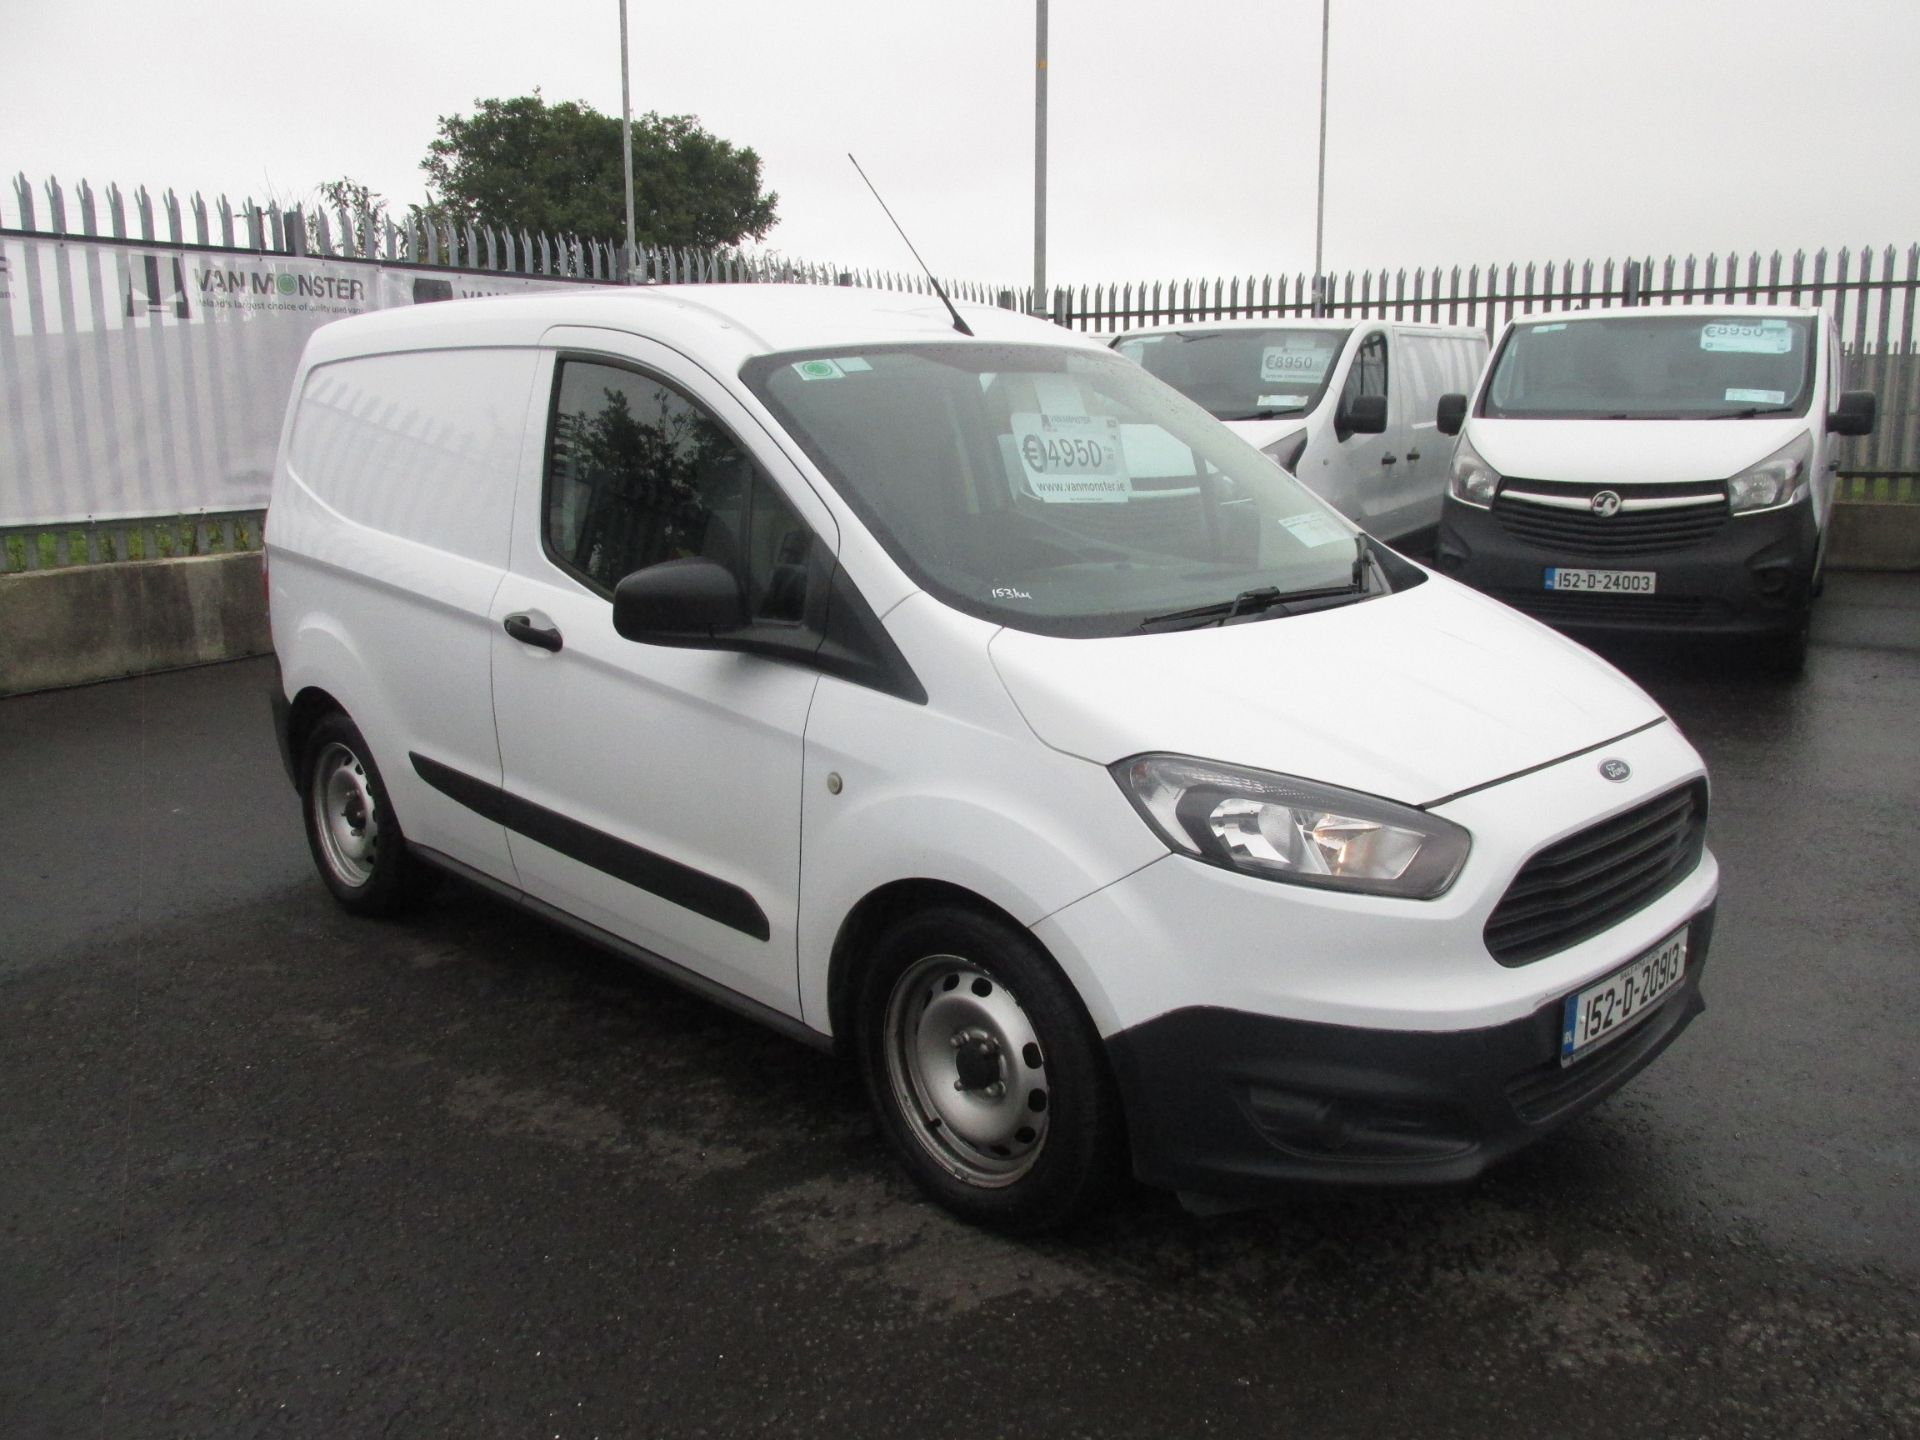 2015 Ford Transit Courier VAN Base 75PS 3DR (152D20913)